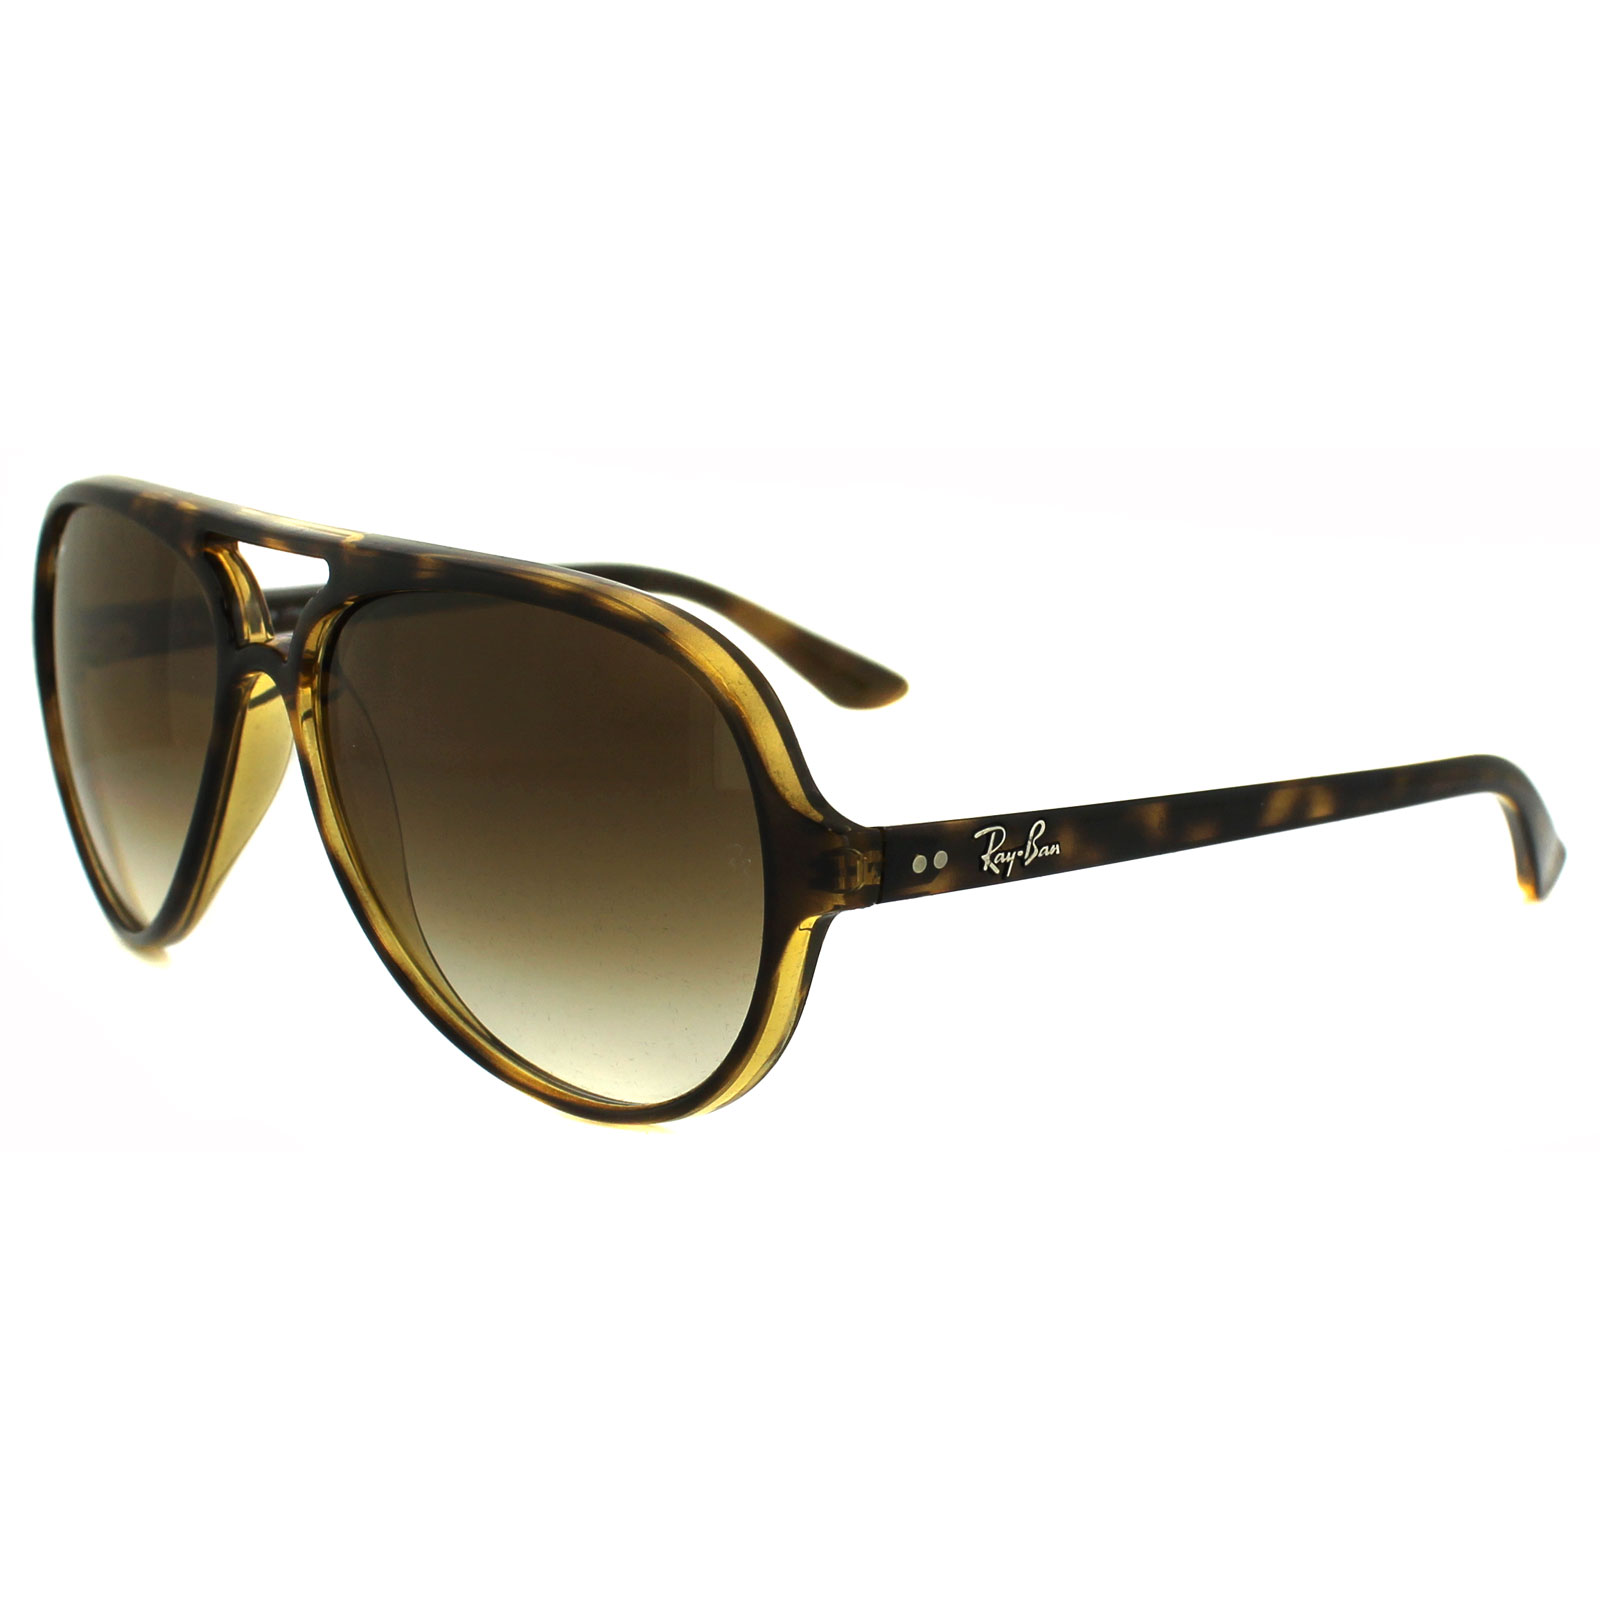 73f9ced3350fa4 Sentinel Ray-Ban Sunglasses Cats 5000 4125 710 51 Havana Brown